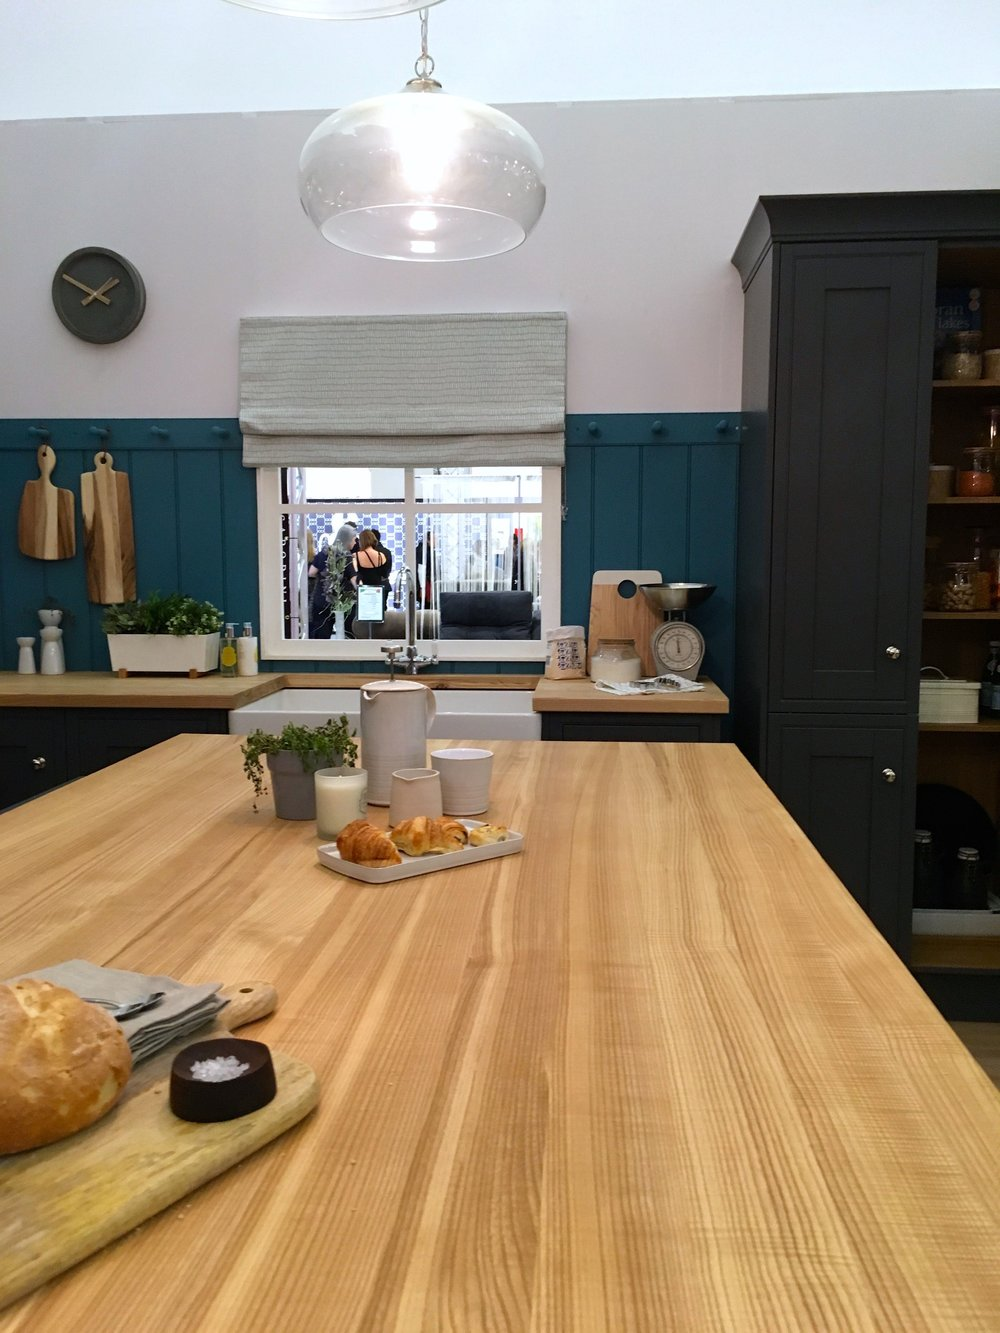 A large central island in the kitchen roomset at the ideal home show